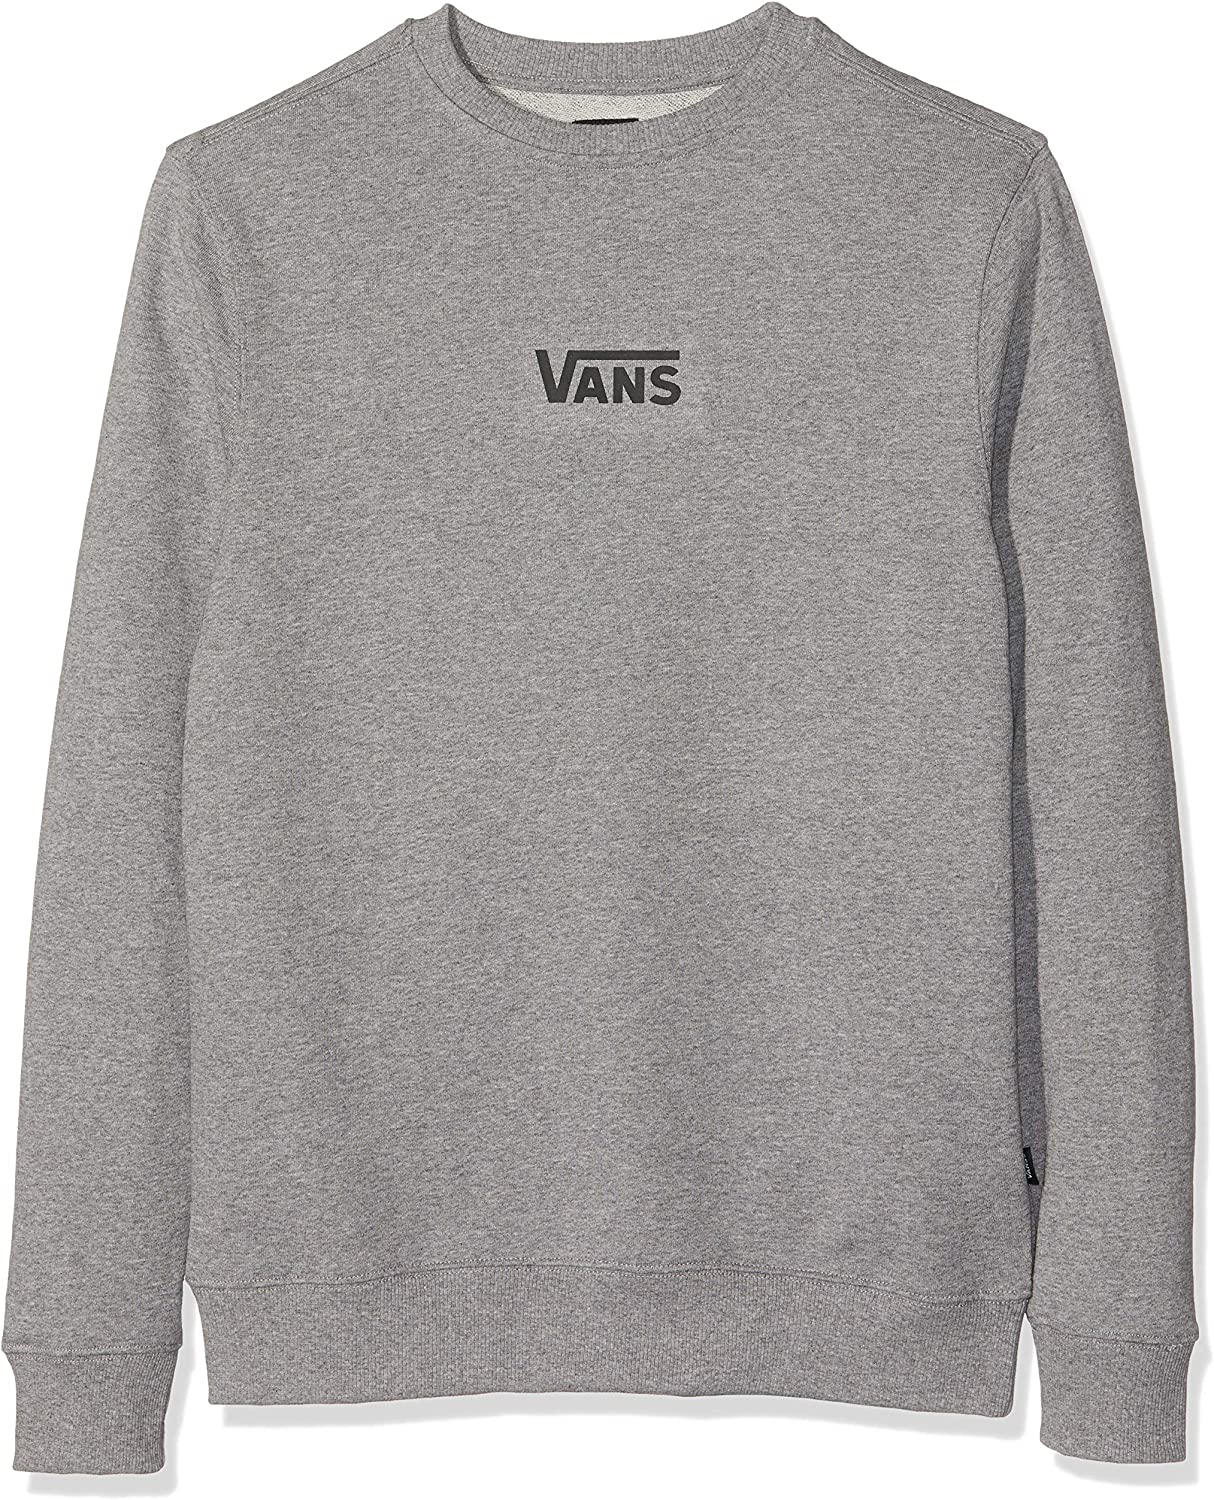 Vans Herren French Terry Classic Crew Sweatshirt